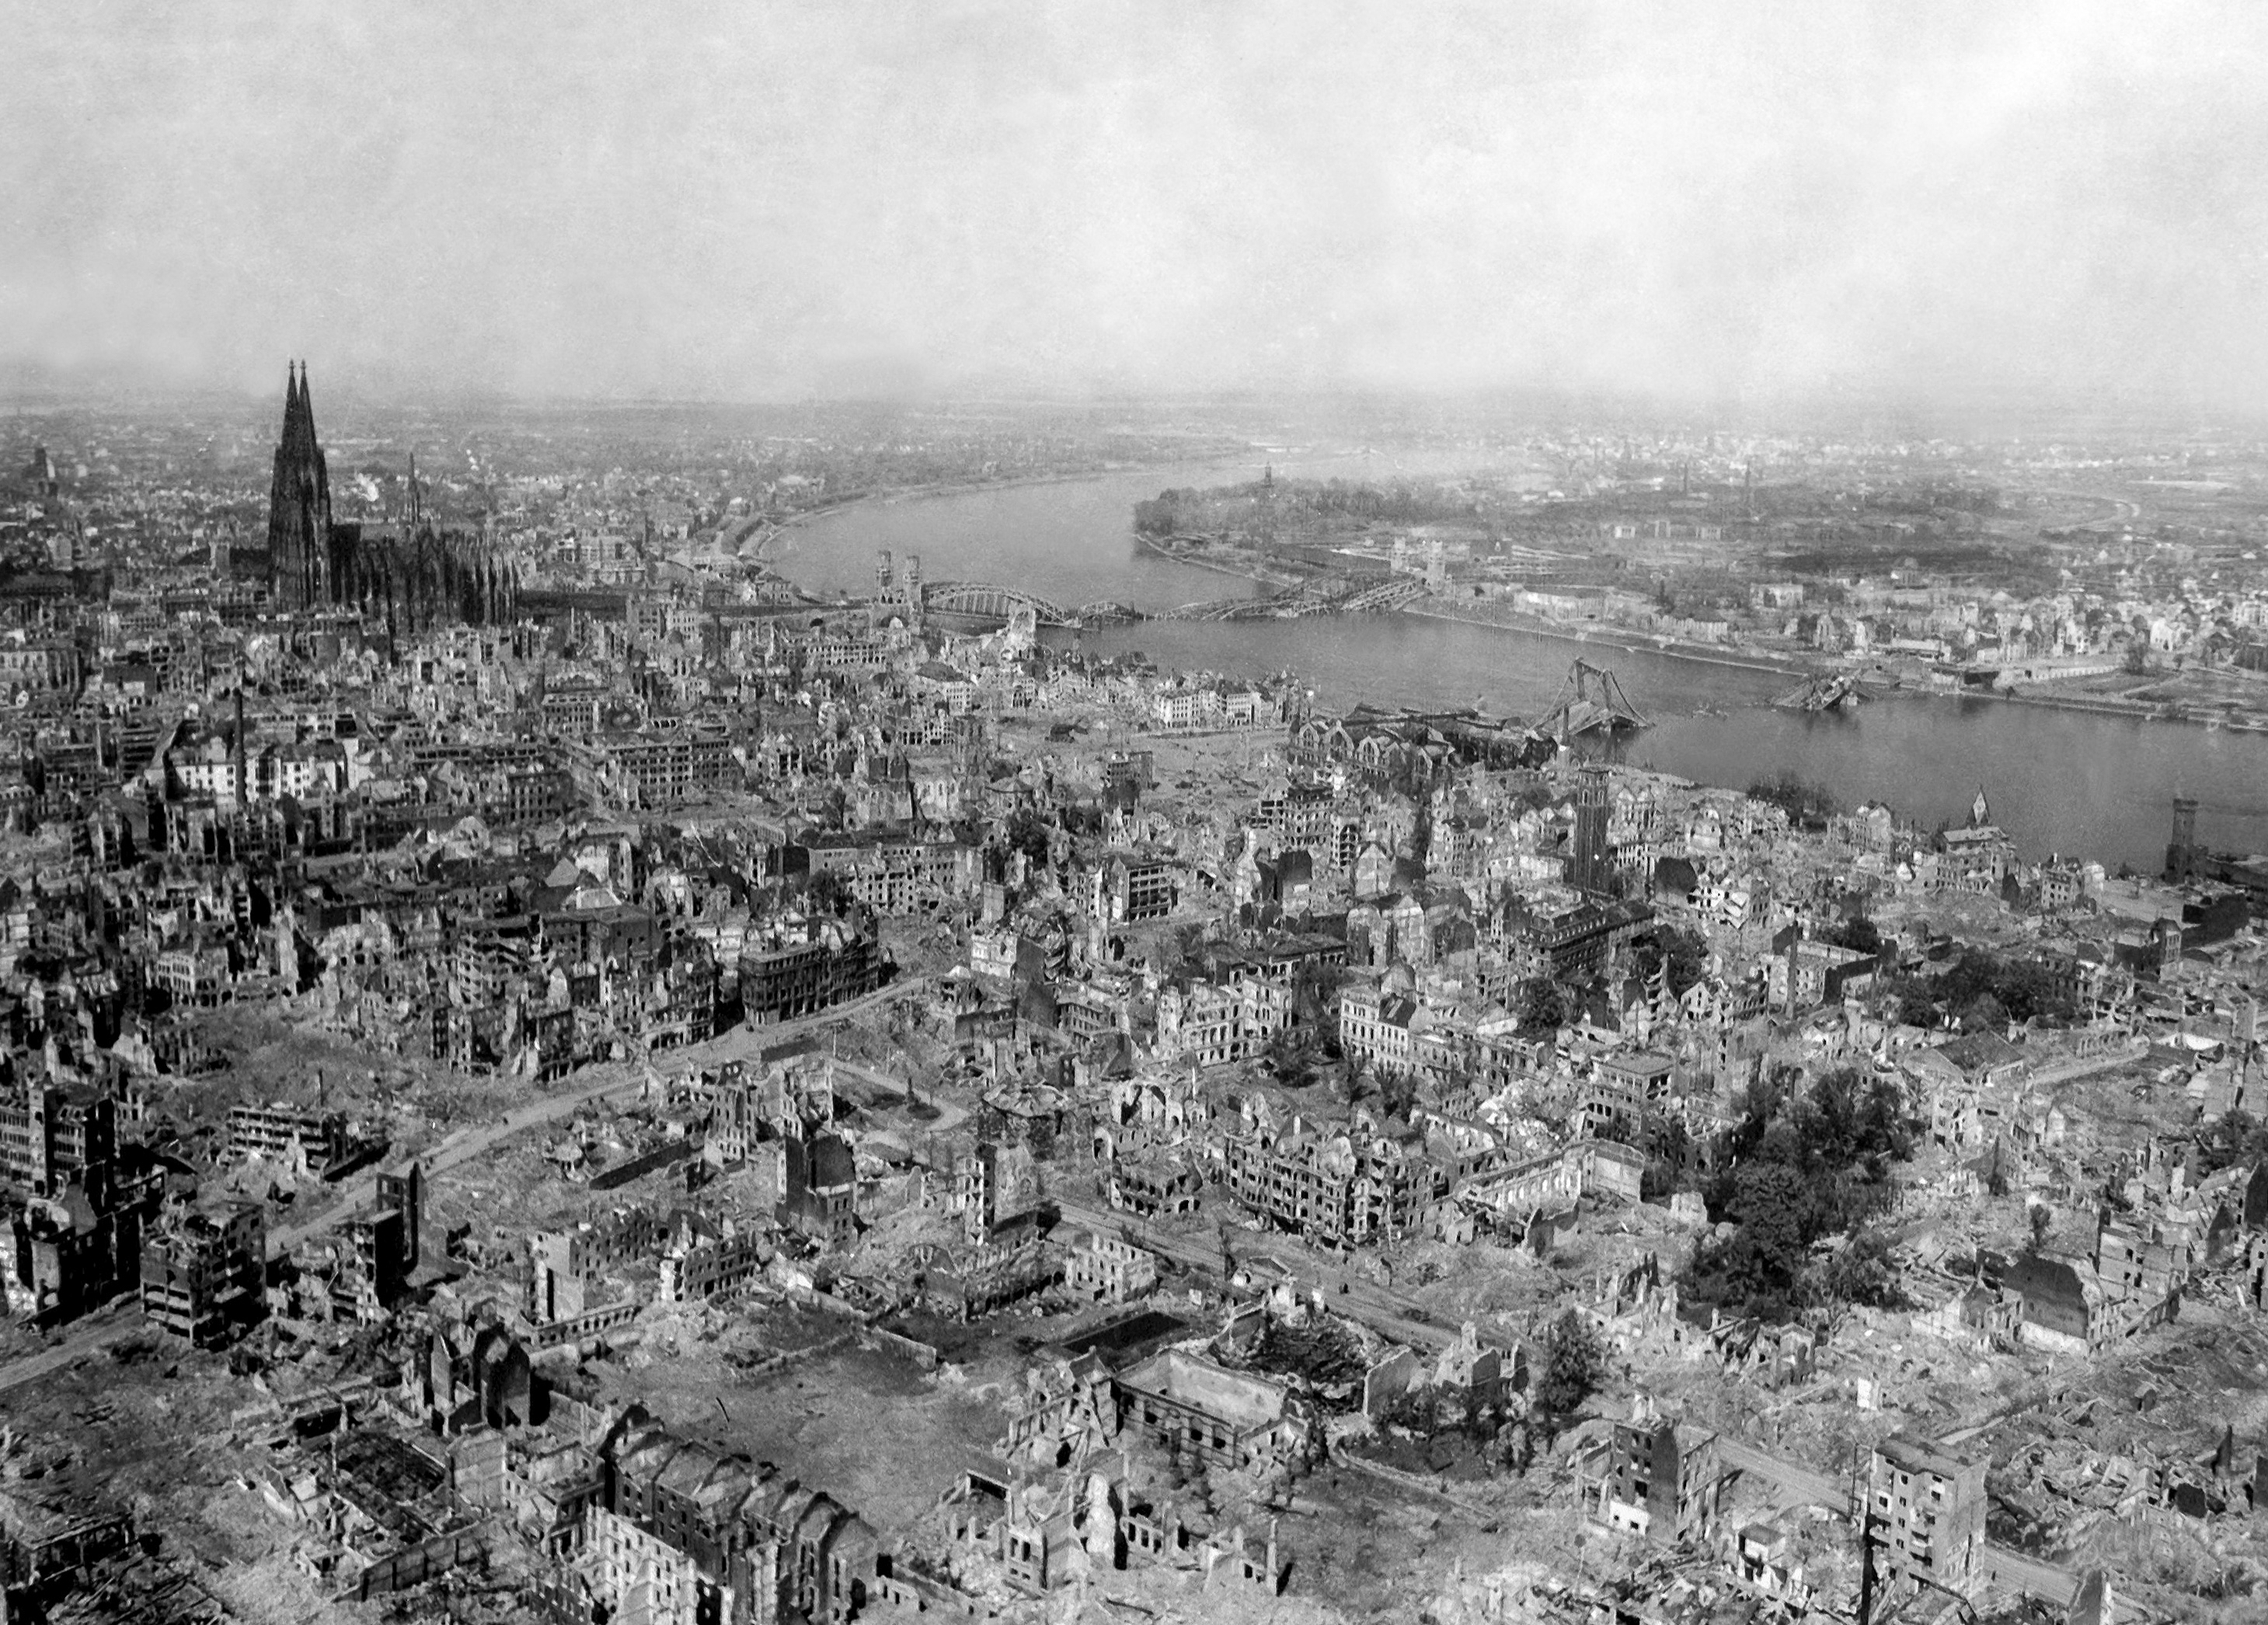 Köln am Ende des Bombenkrieges, April 1945